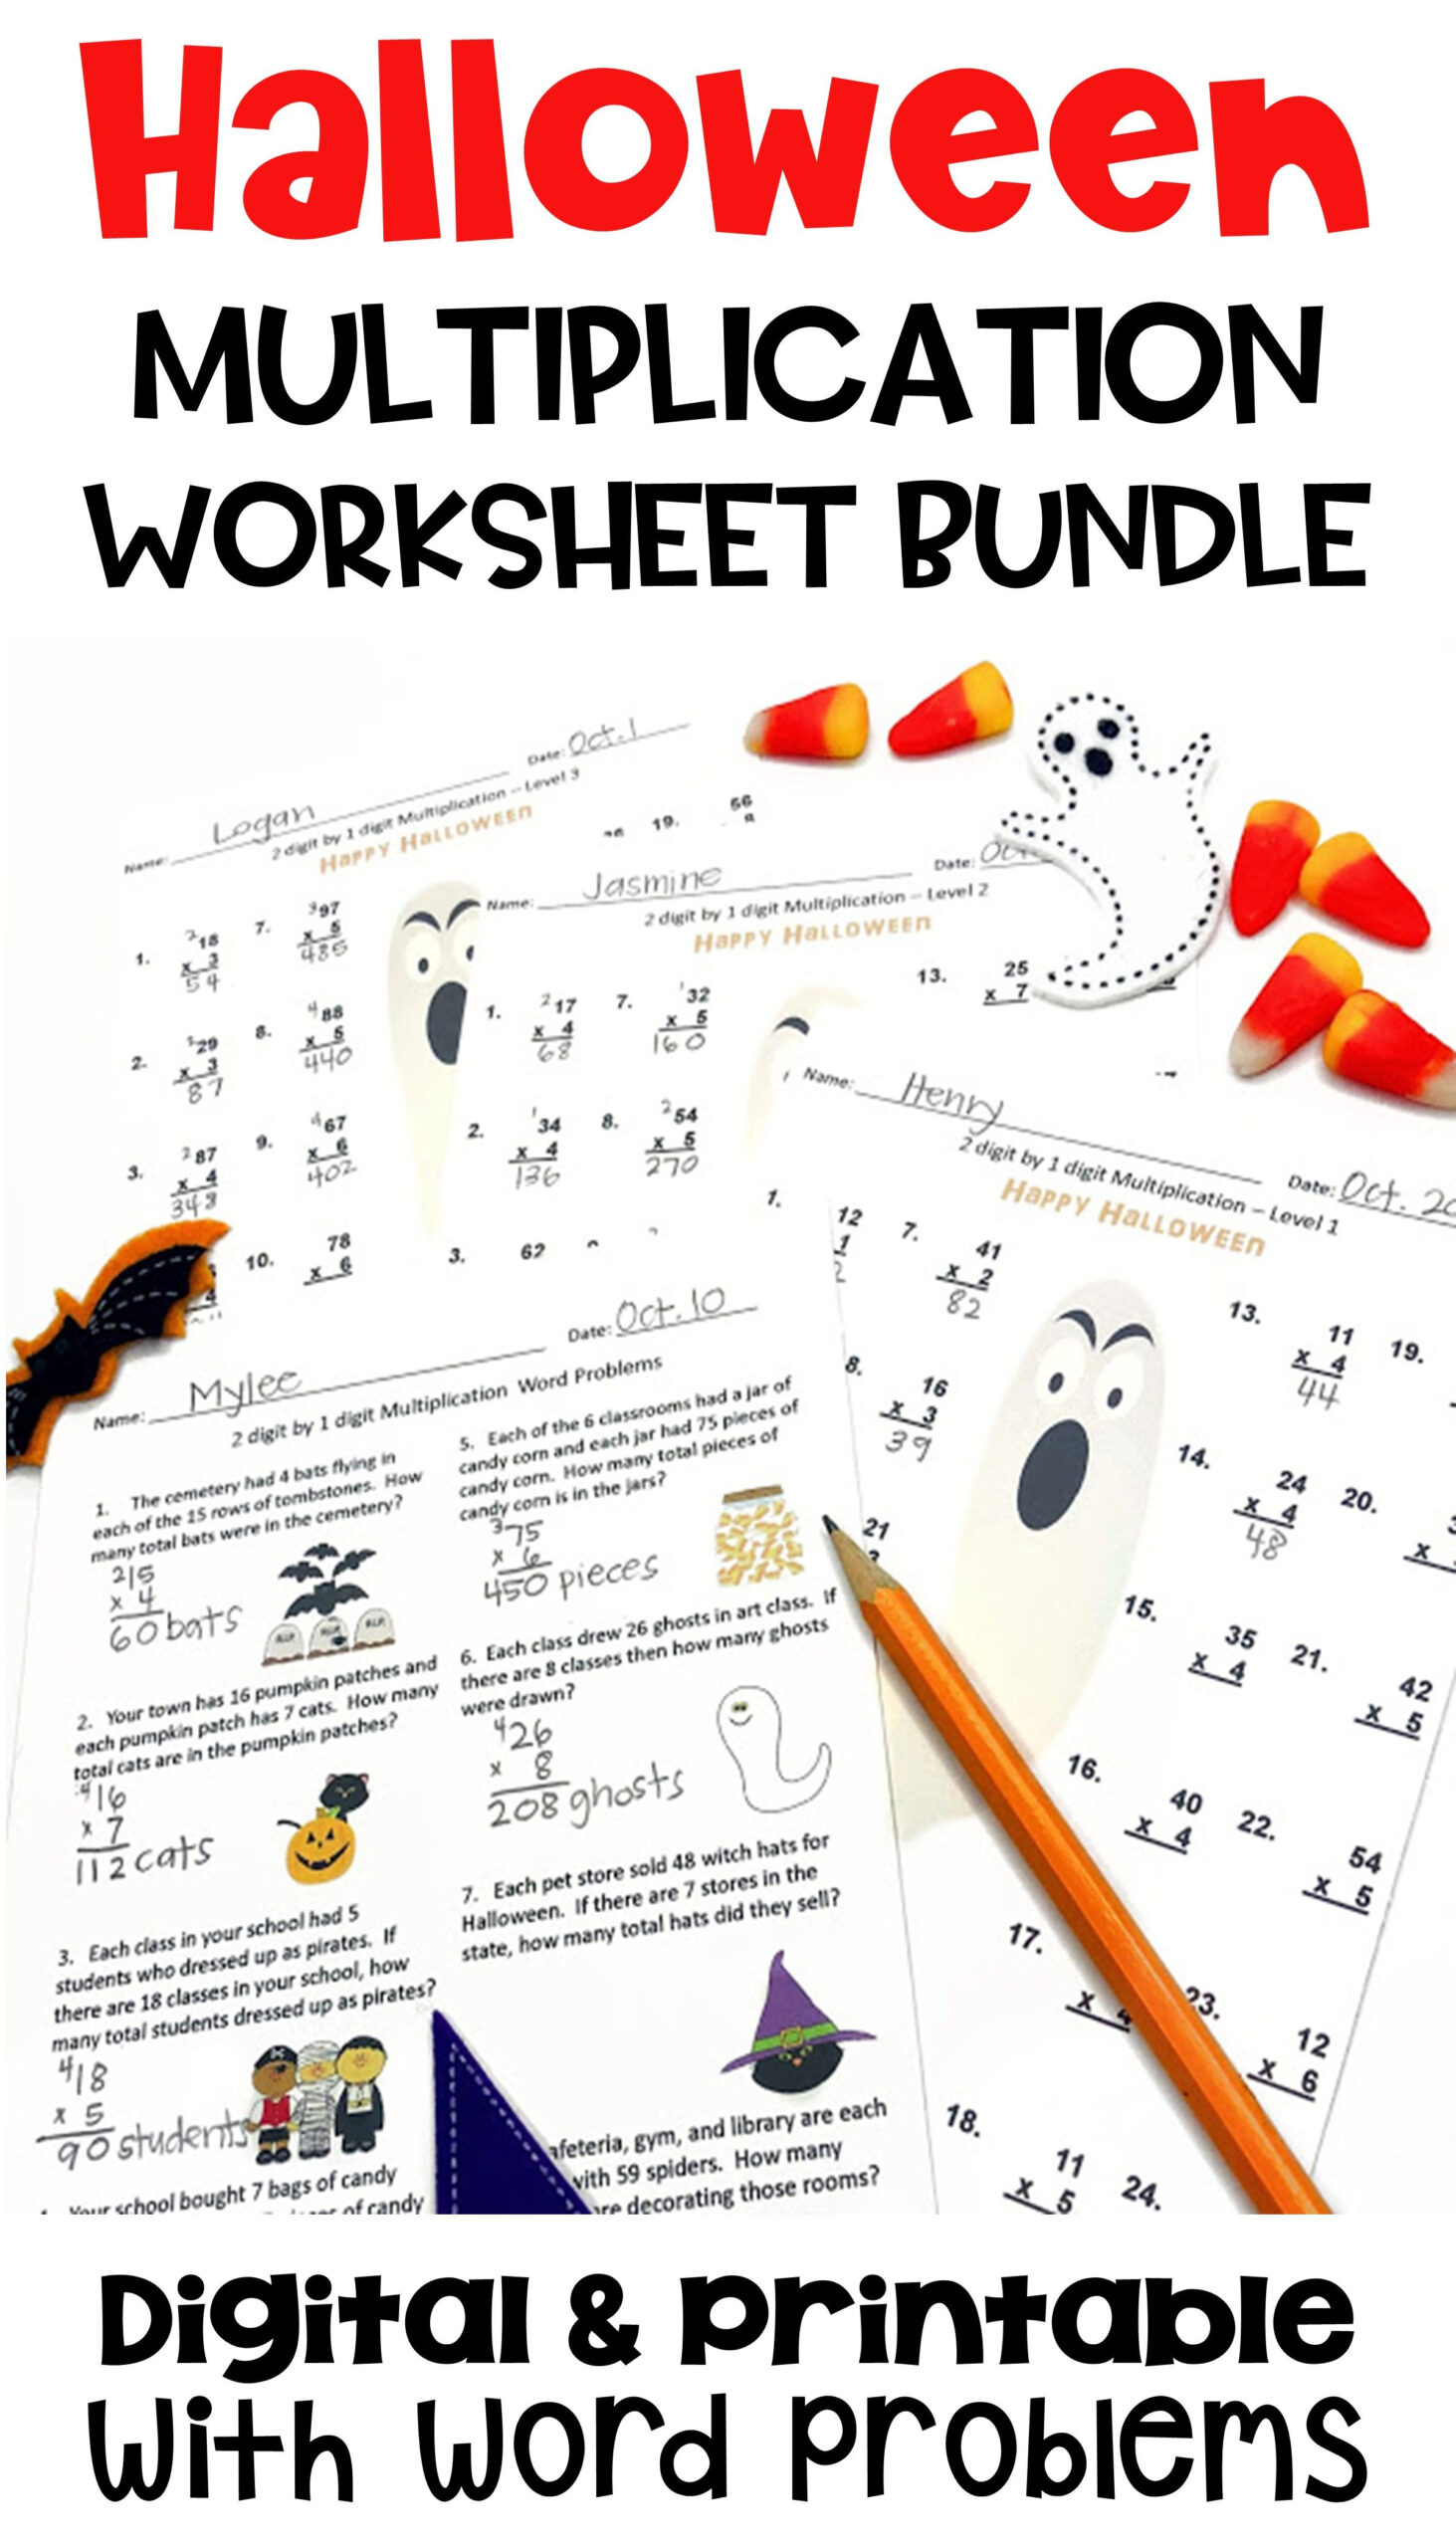 Halloween Multiplication Worksheet Bundle With Digital And